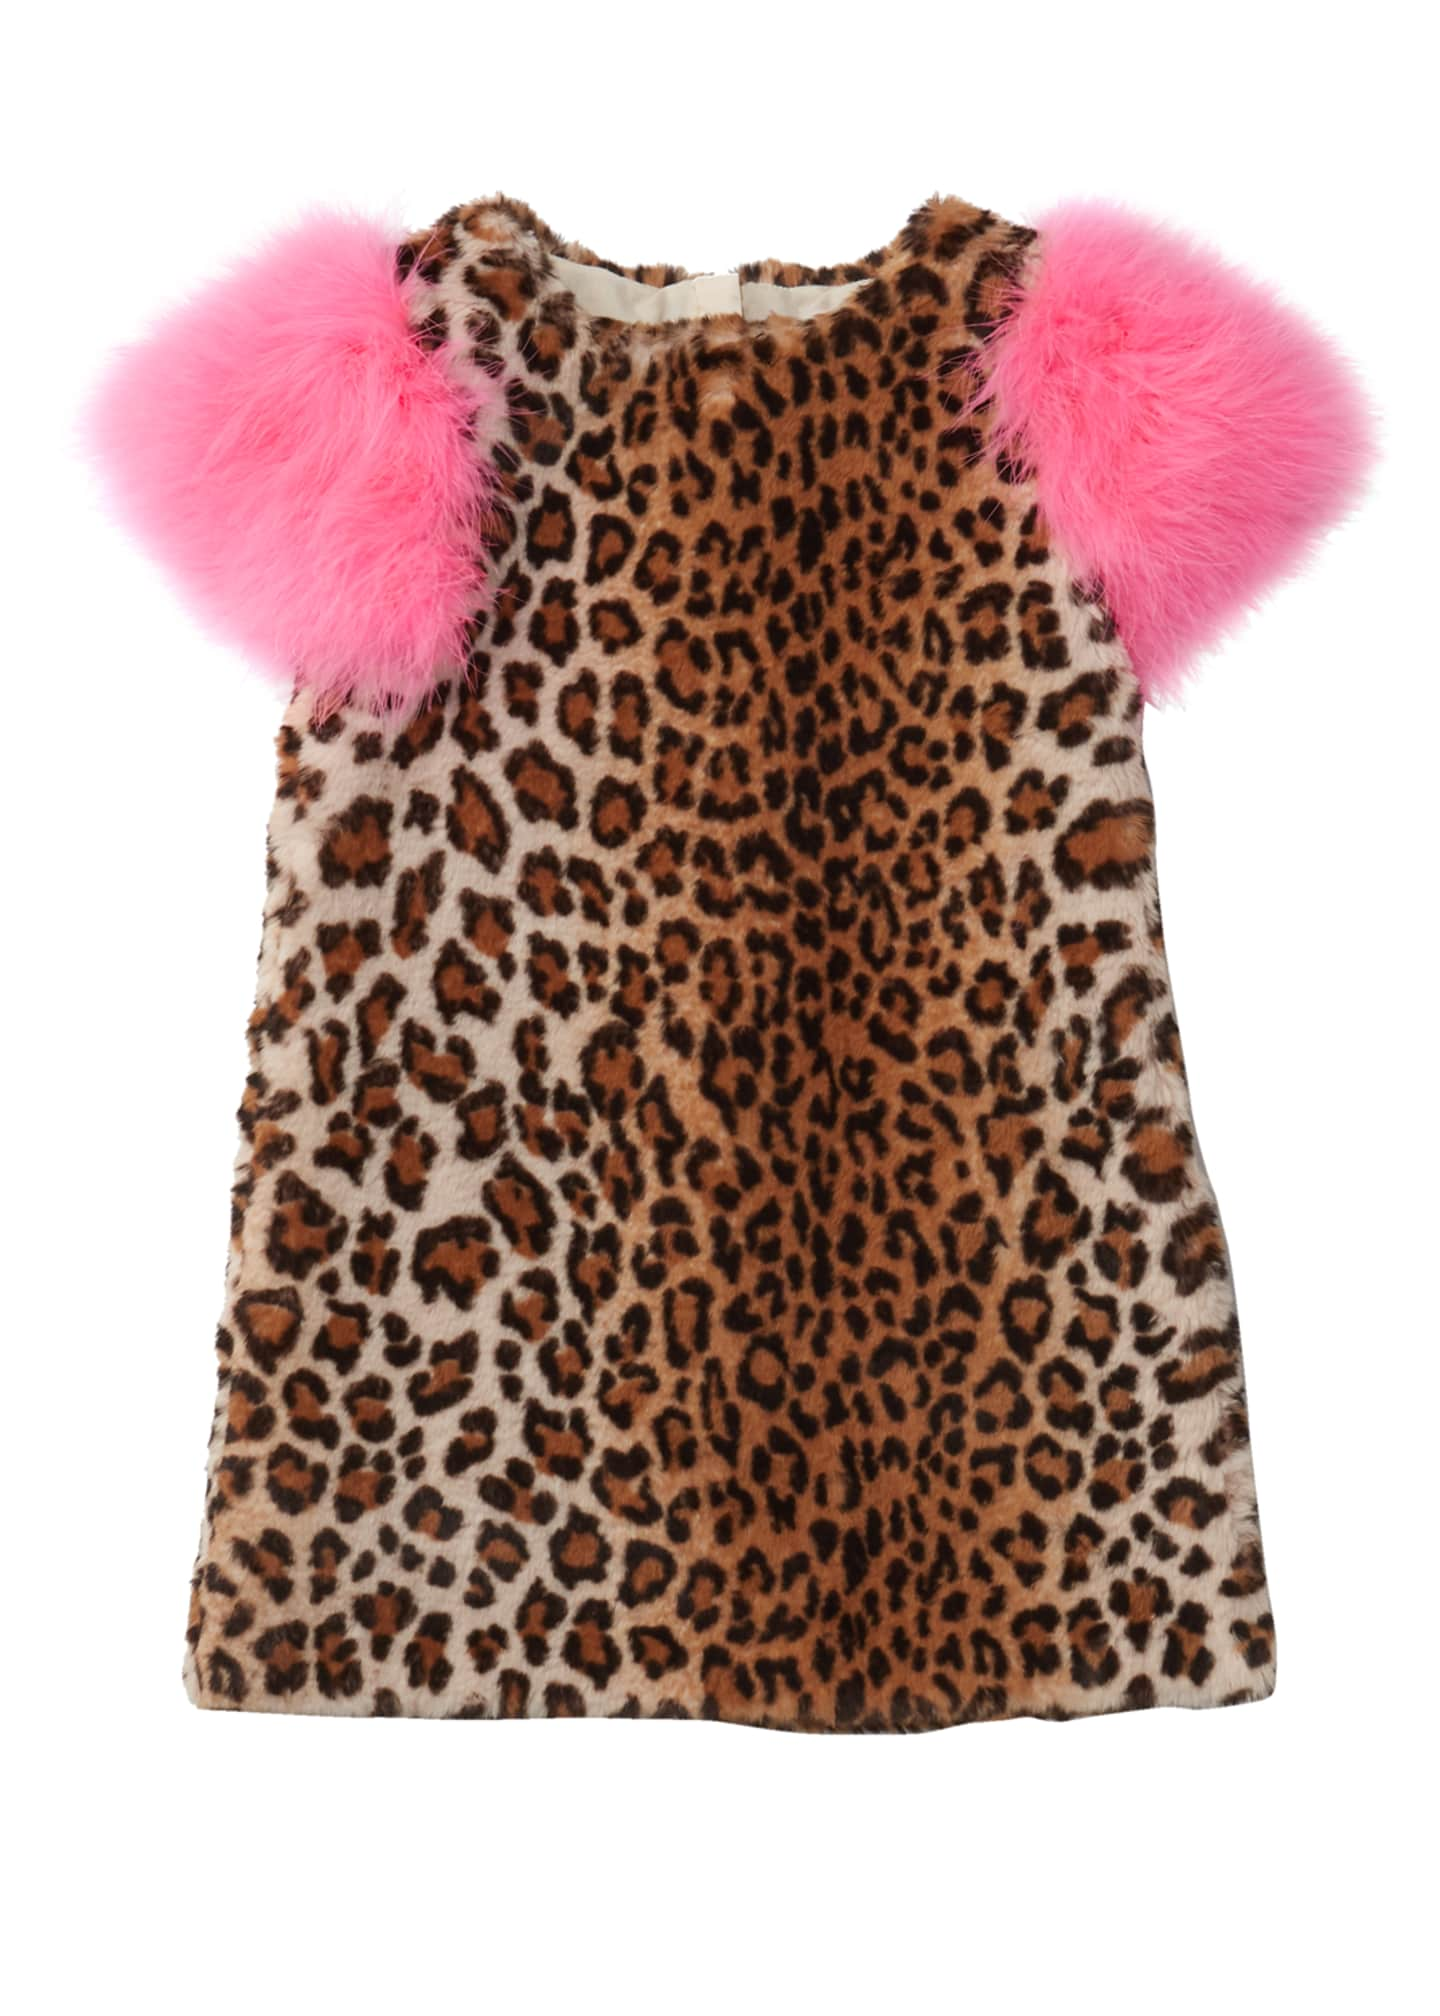 Image 1 of 1: Nala Leopard Print Faux Fur Dress, Size 10-12